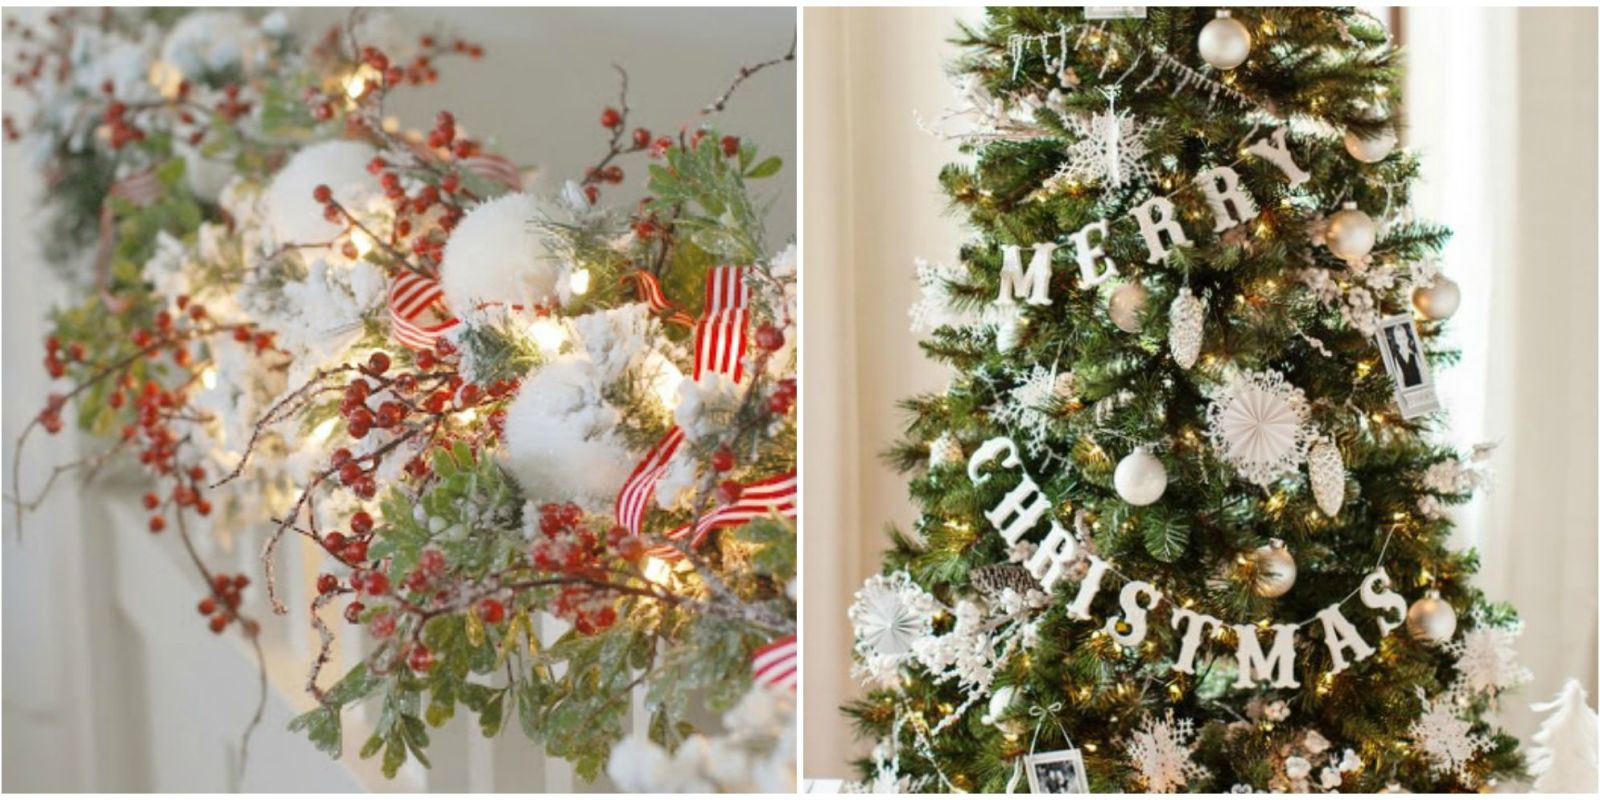 25 Christmas Garland Ideas Decorating With Holiday Garlands